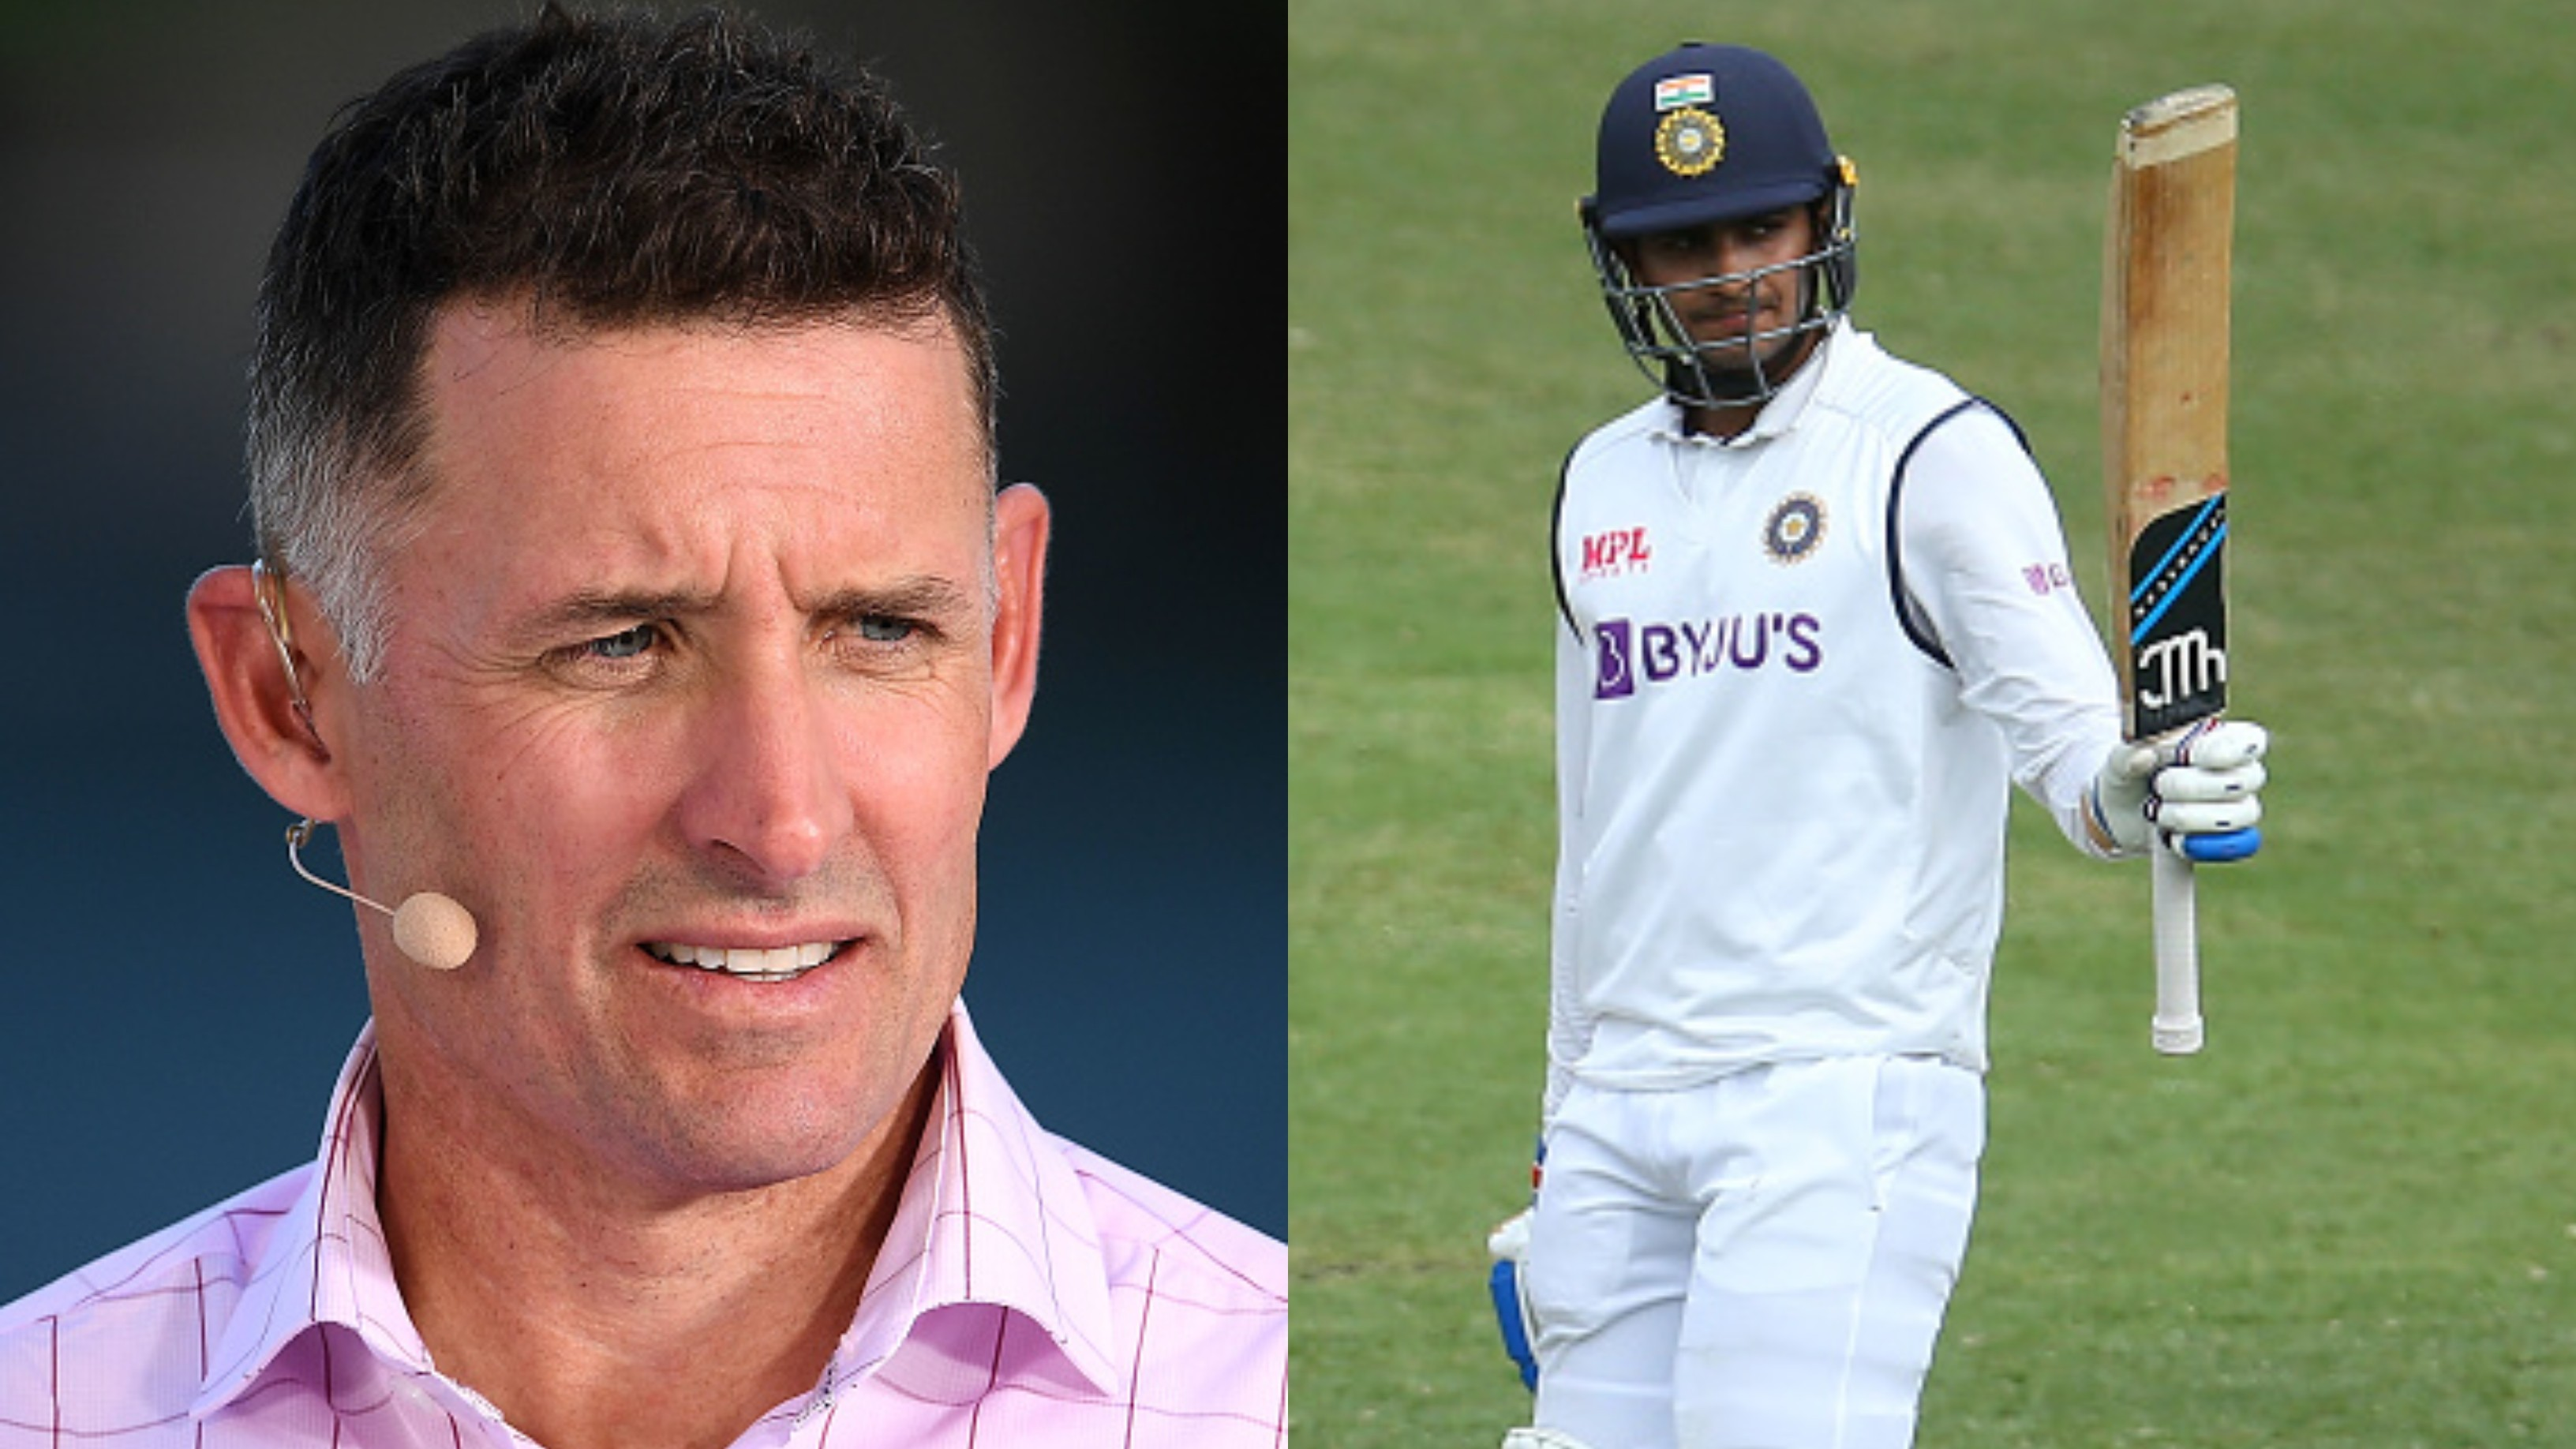 AUS v IND 2020-21: Shubman Gill quickly becoming my favourite player to watch- Michael Hussey